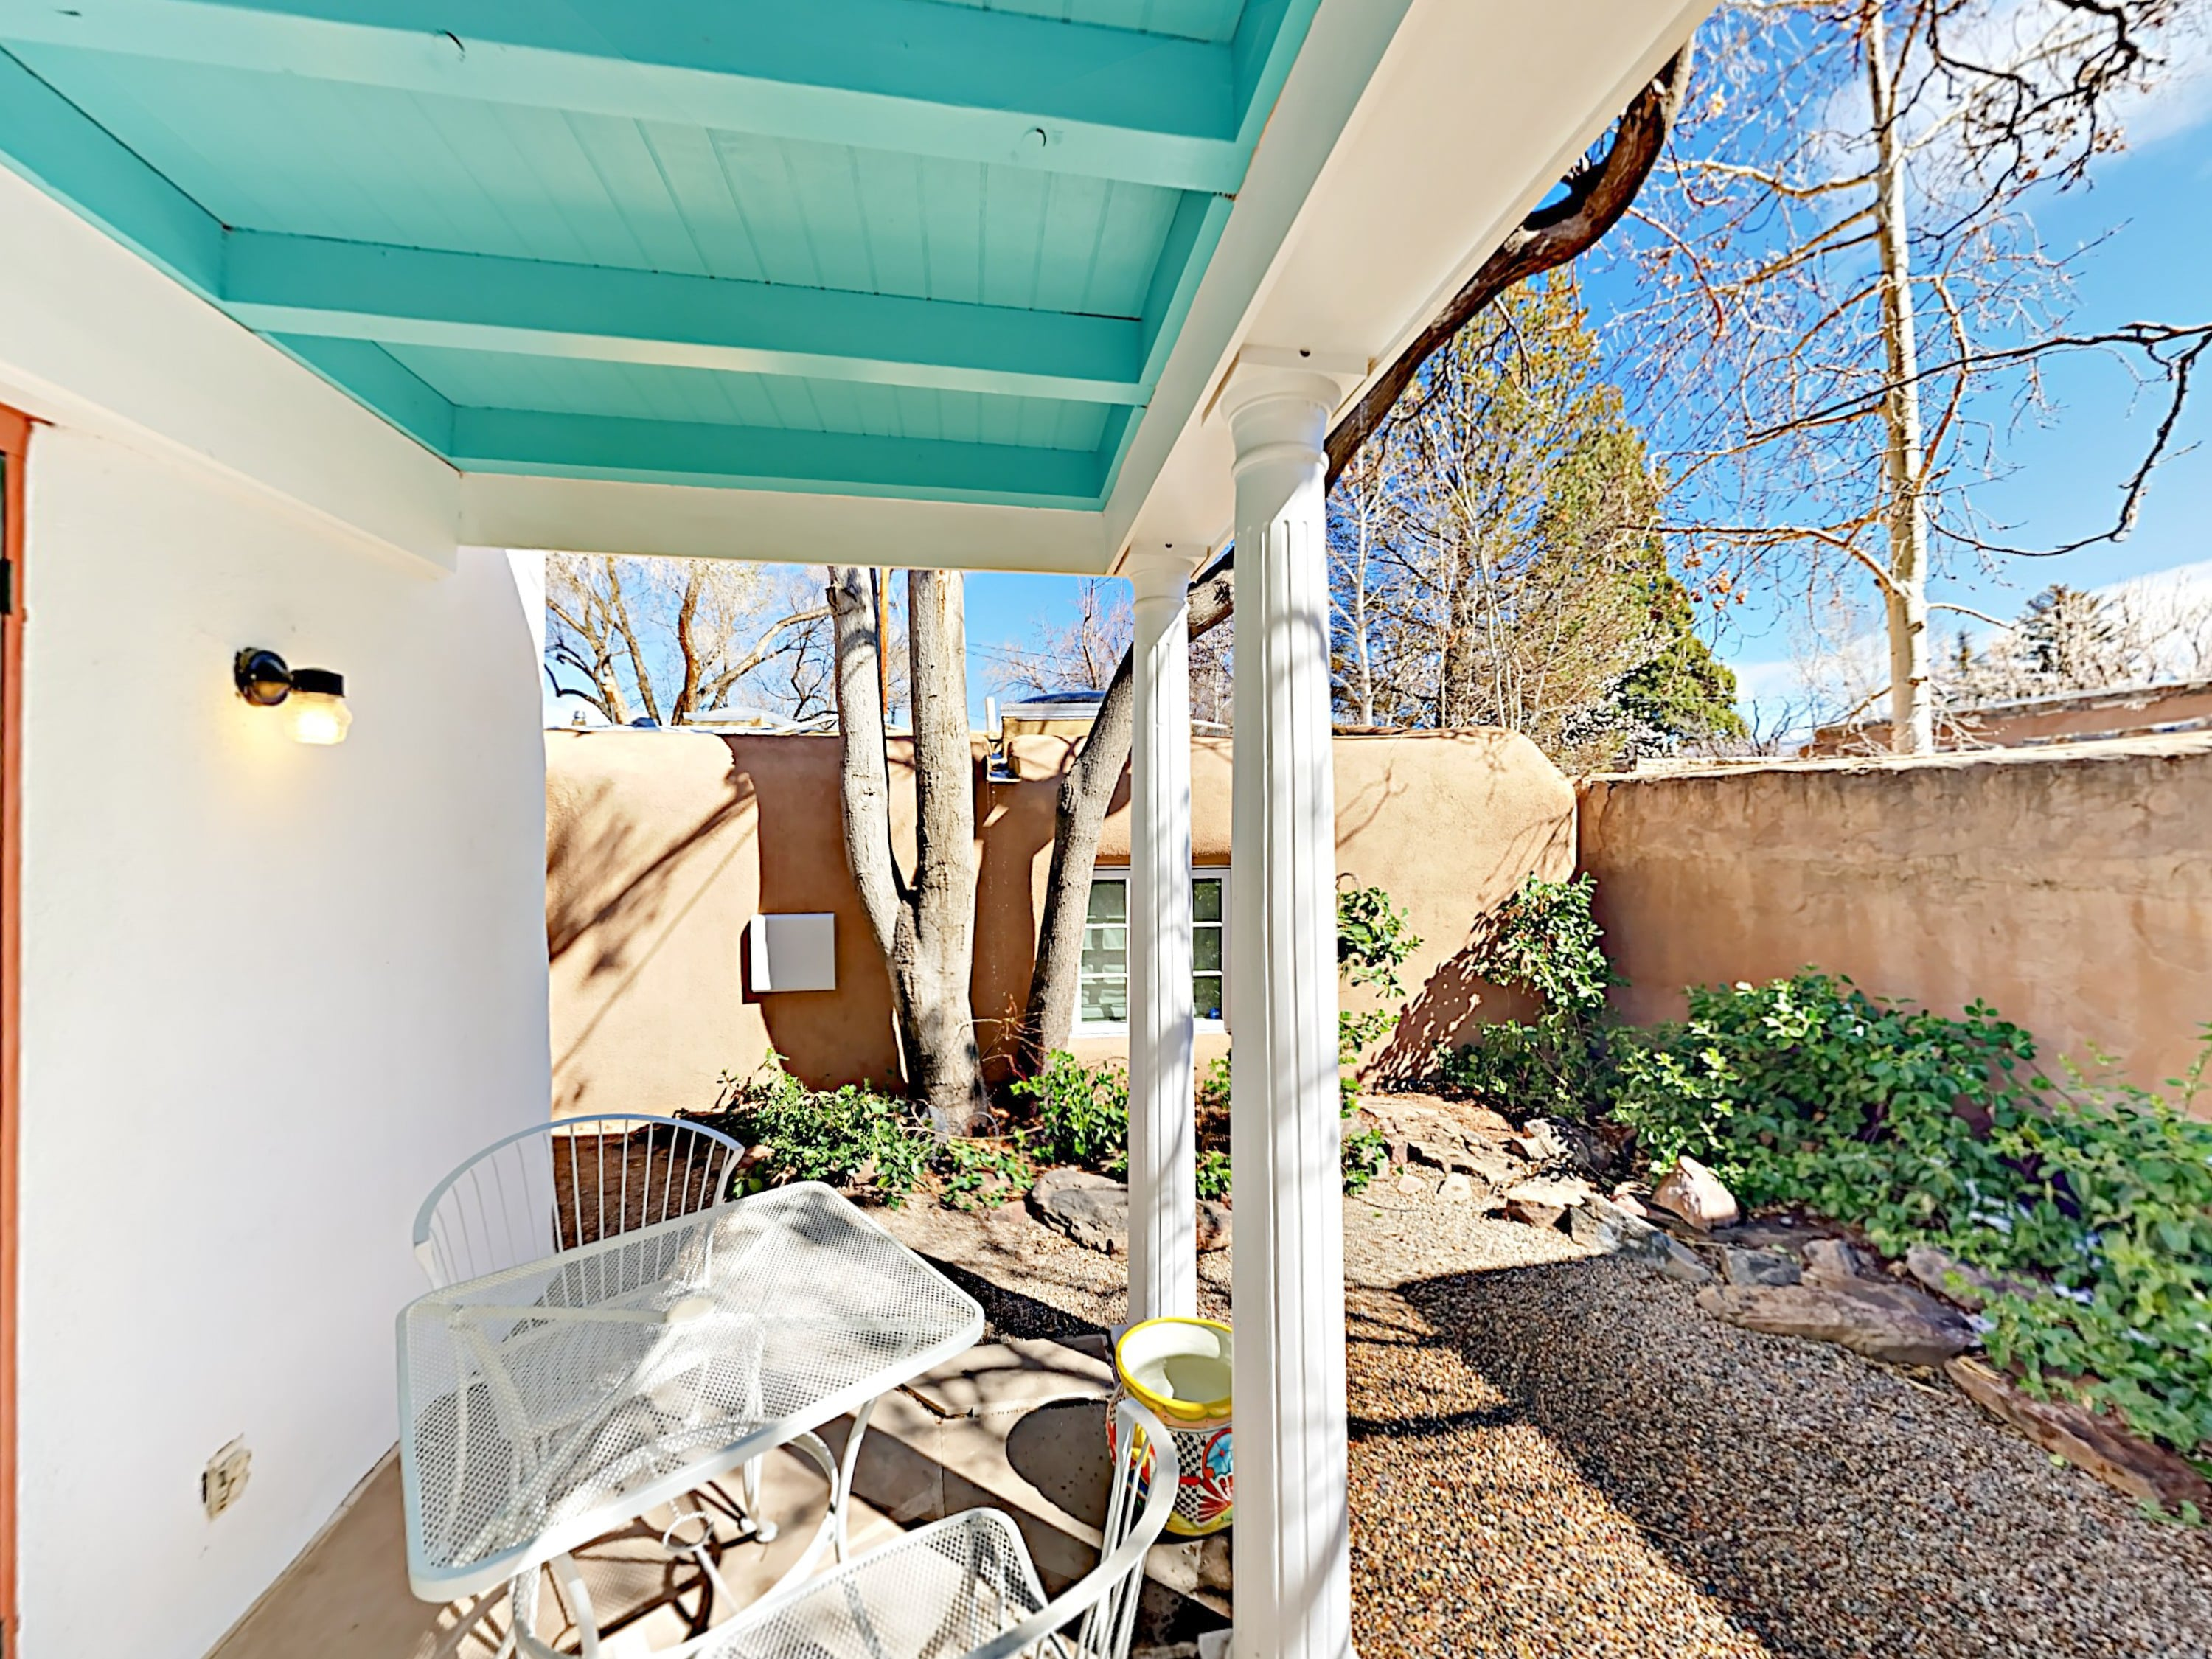 The private garden patio features a covered portal with a bistro table, 2 chairs, and a grill.